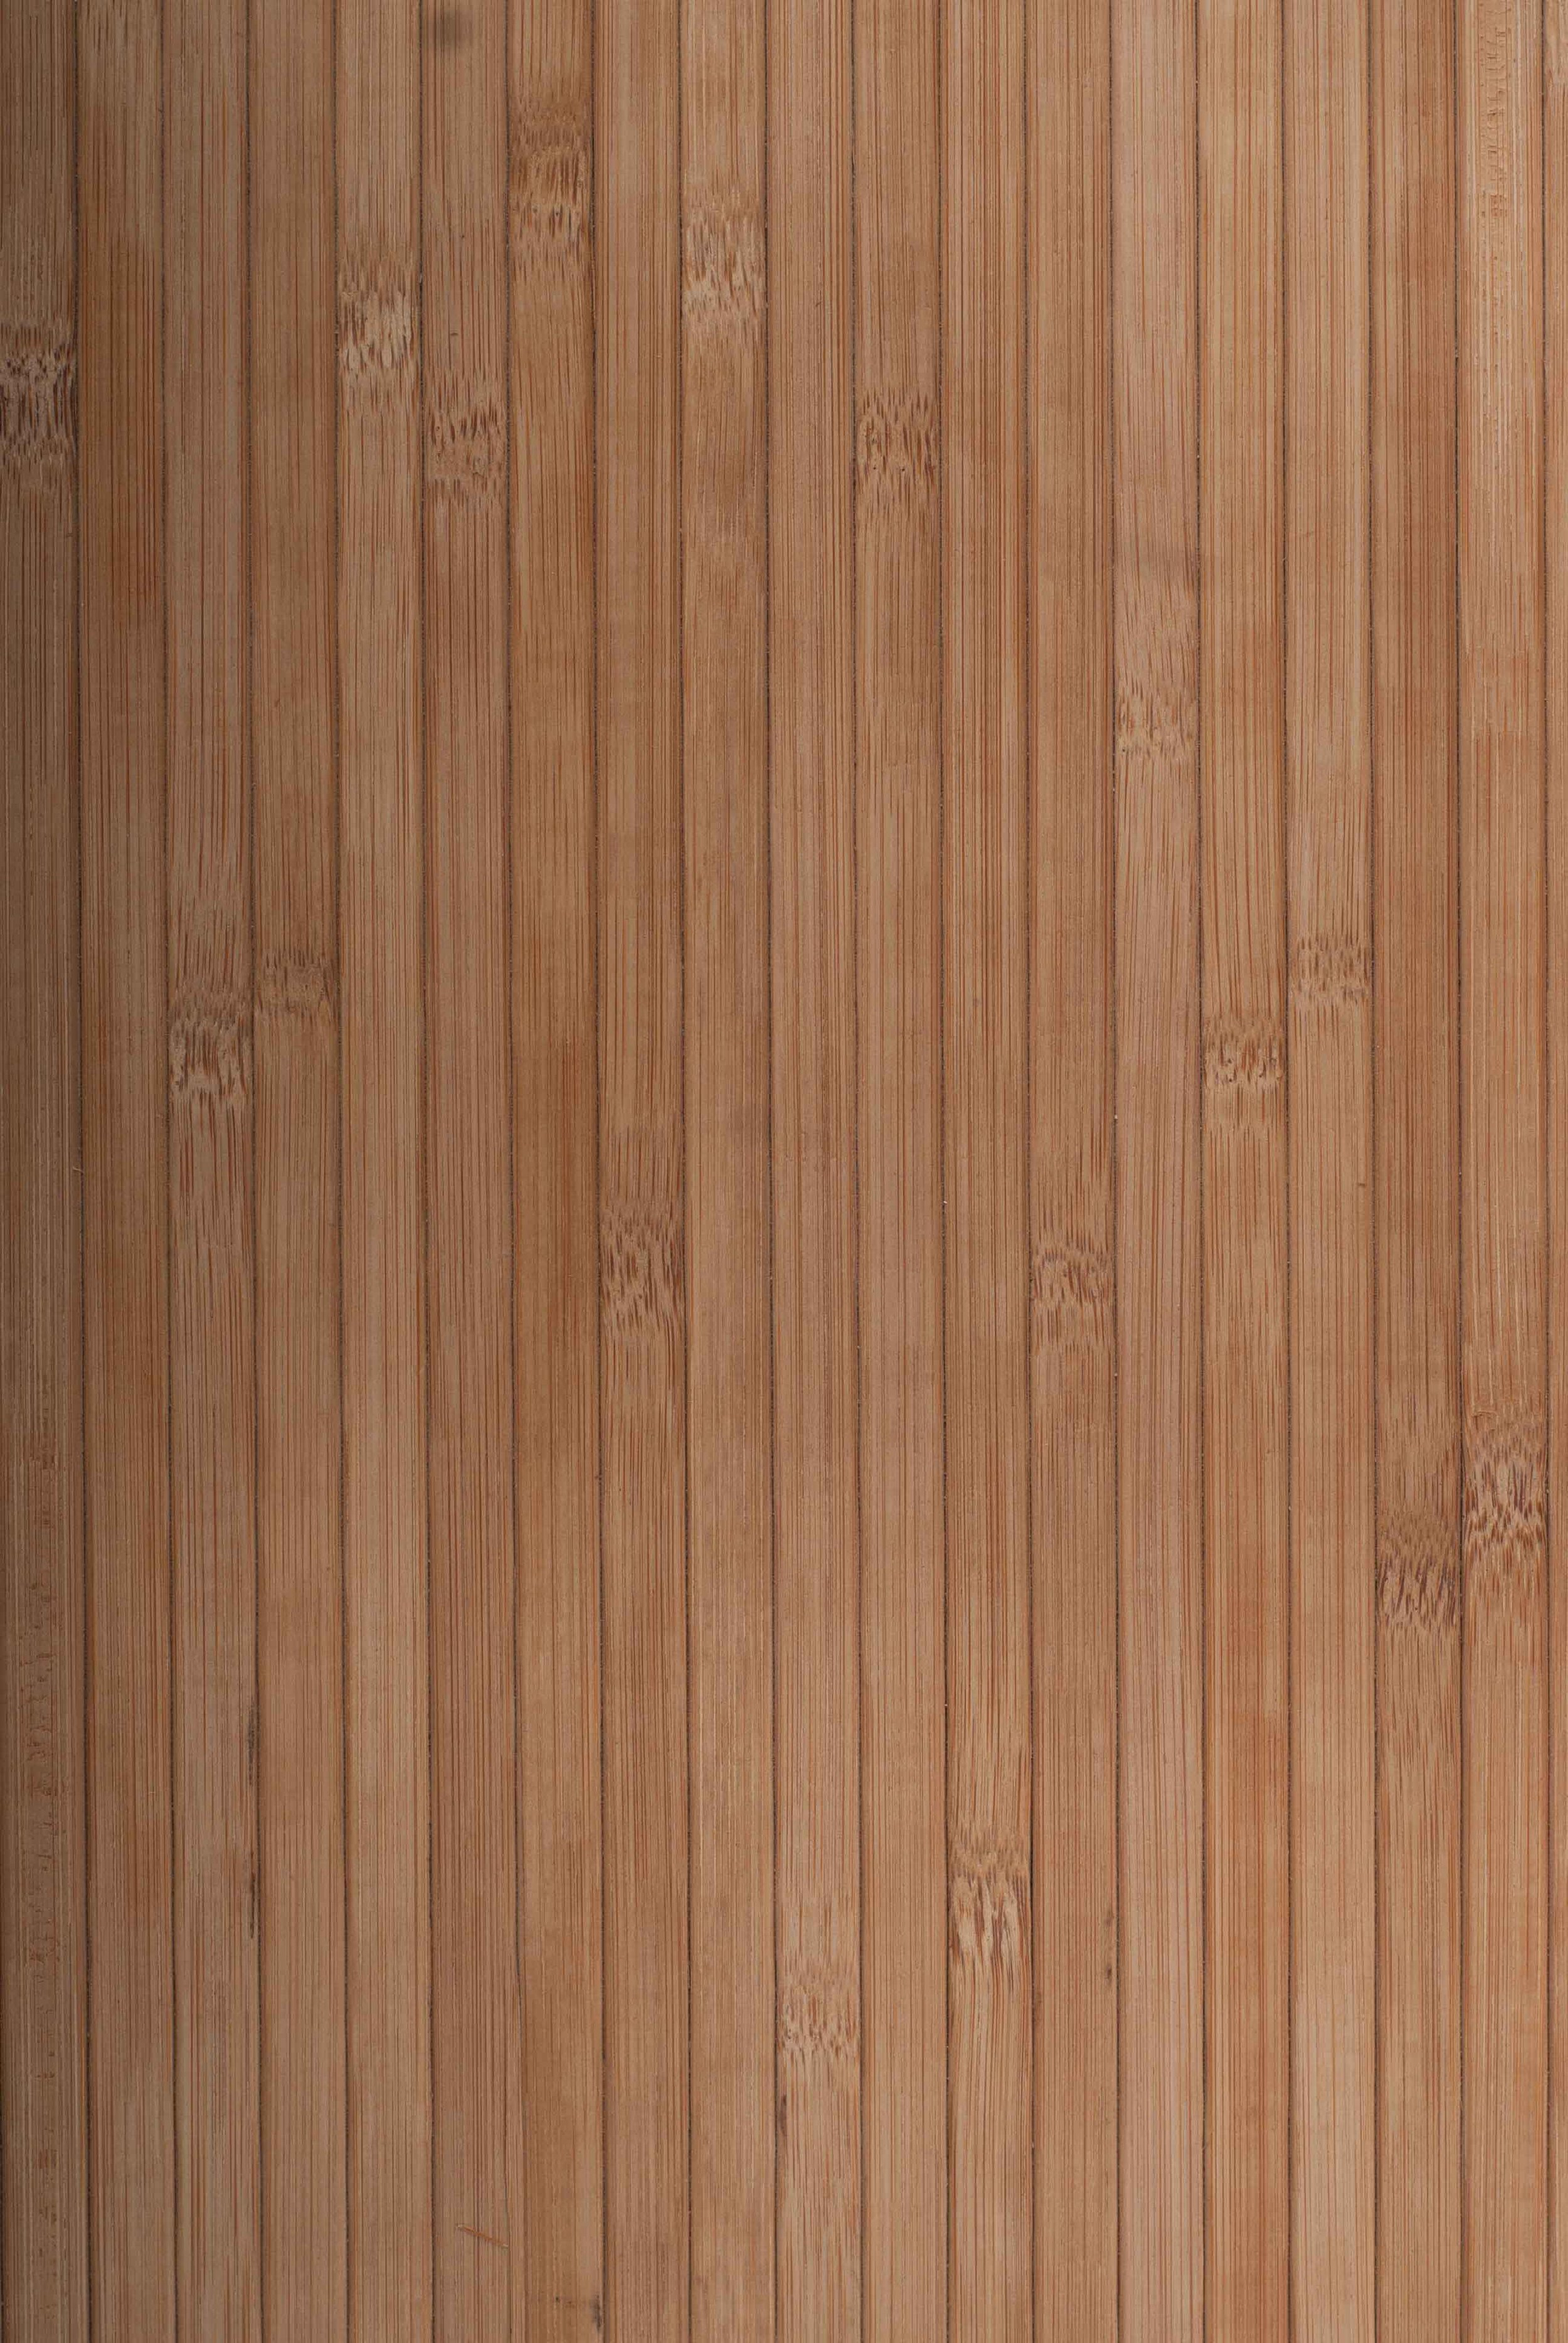 Bamboo Cladding  Brightfields Natural Trading Company